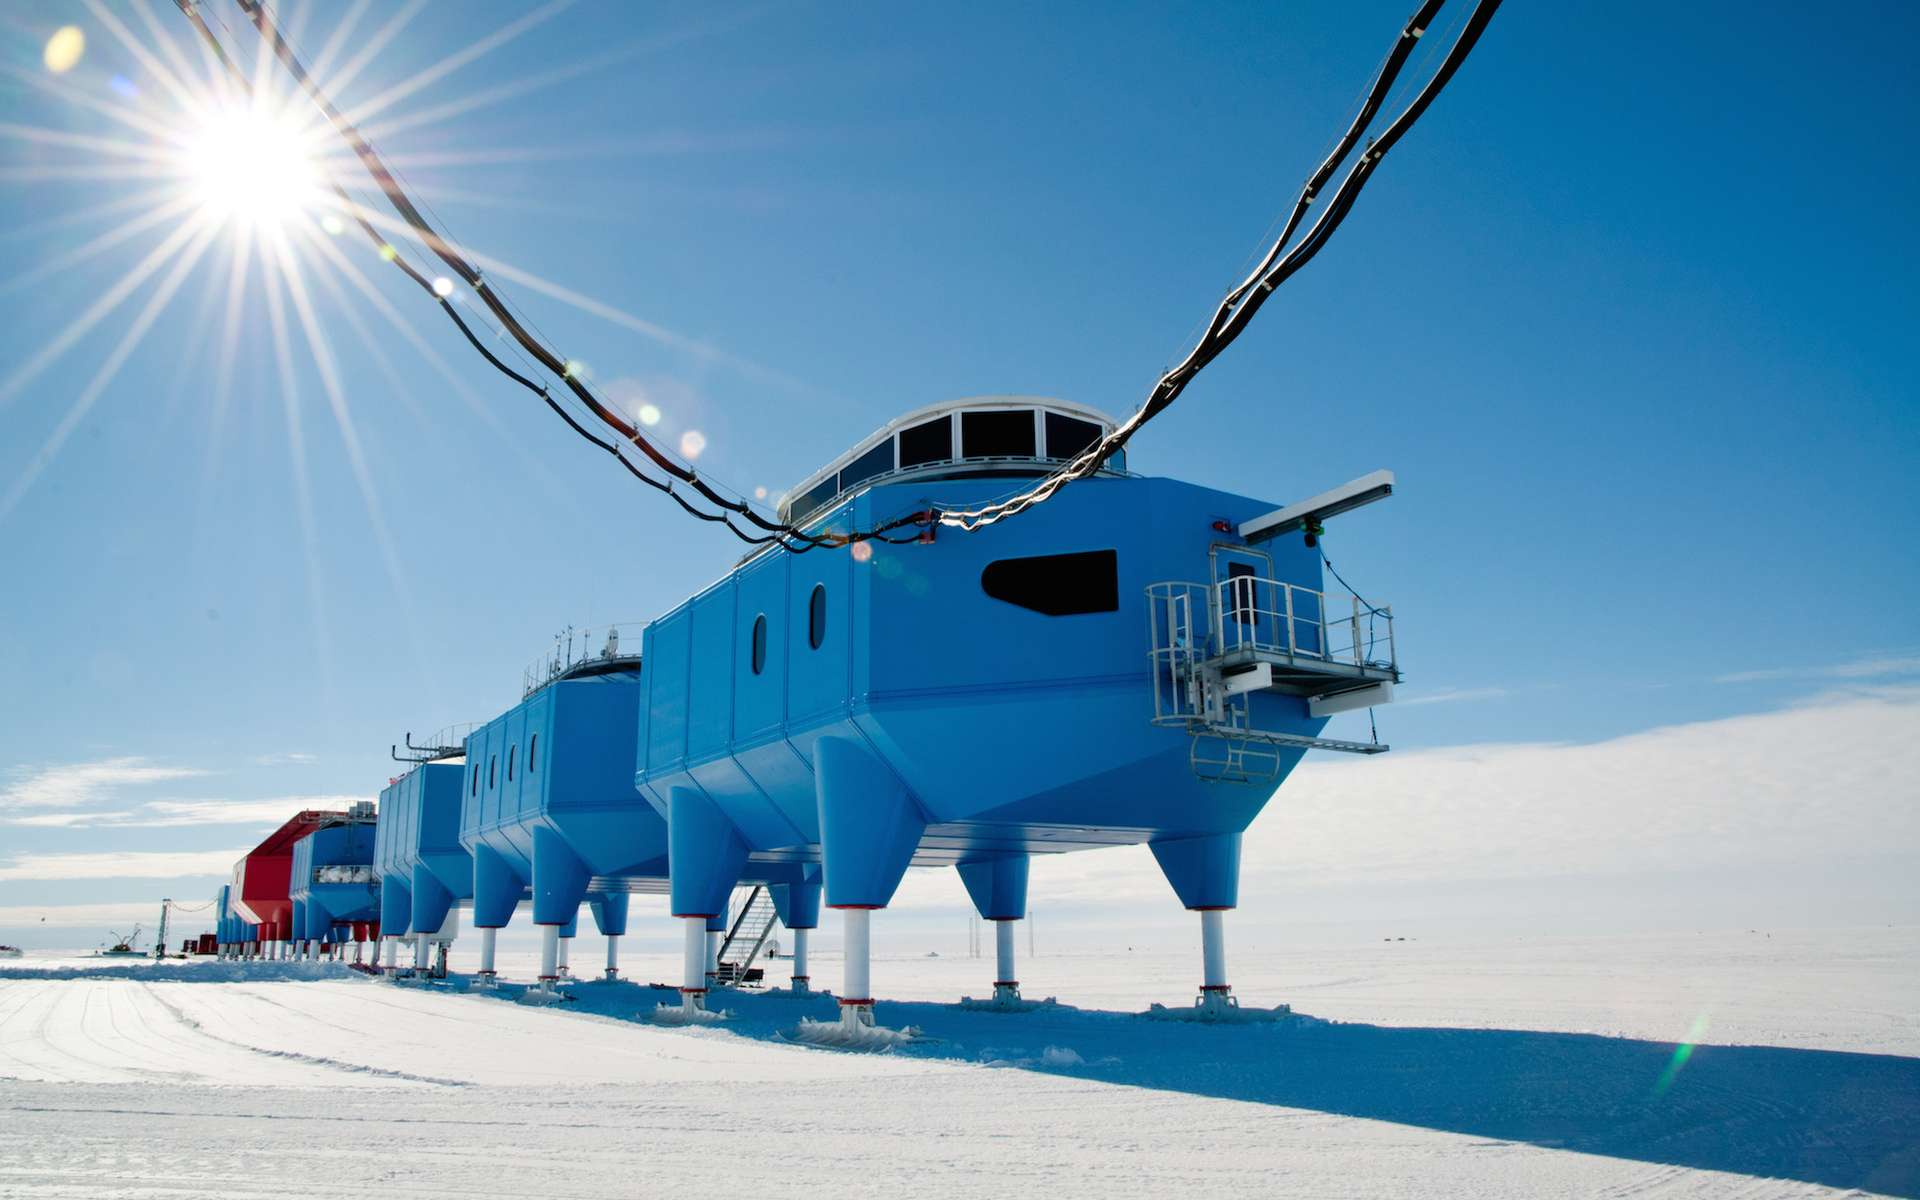 La station scientifique Halley VI. © British Antarctic Survey